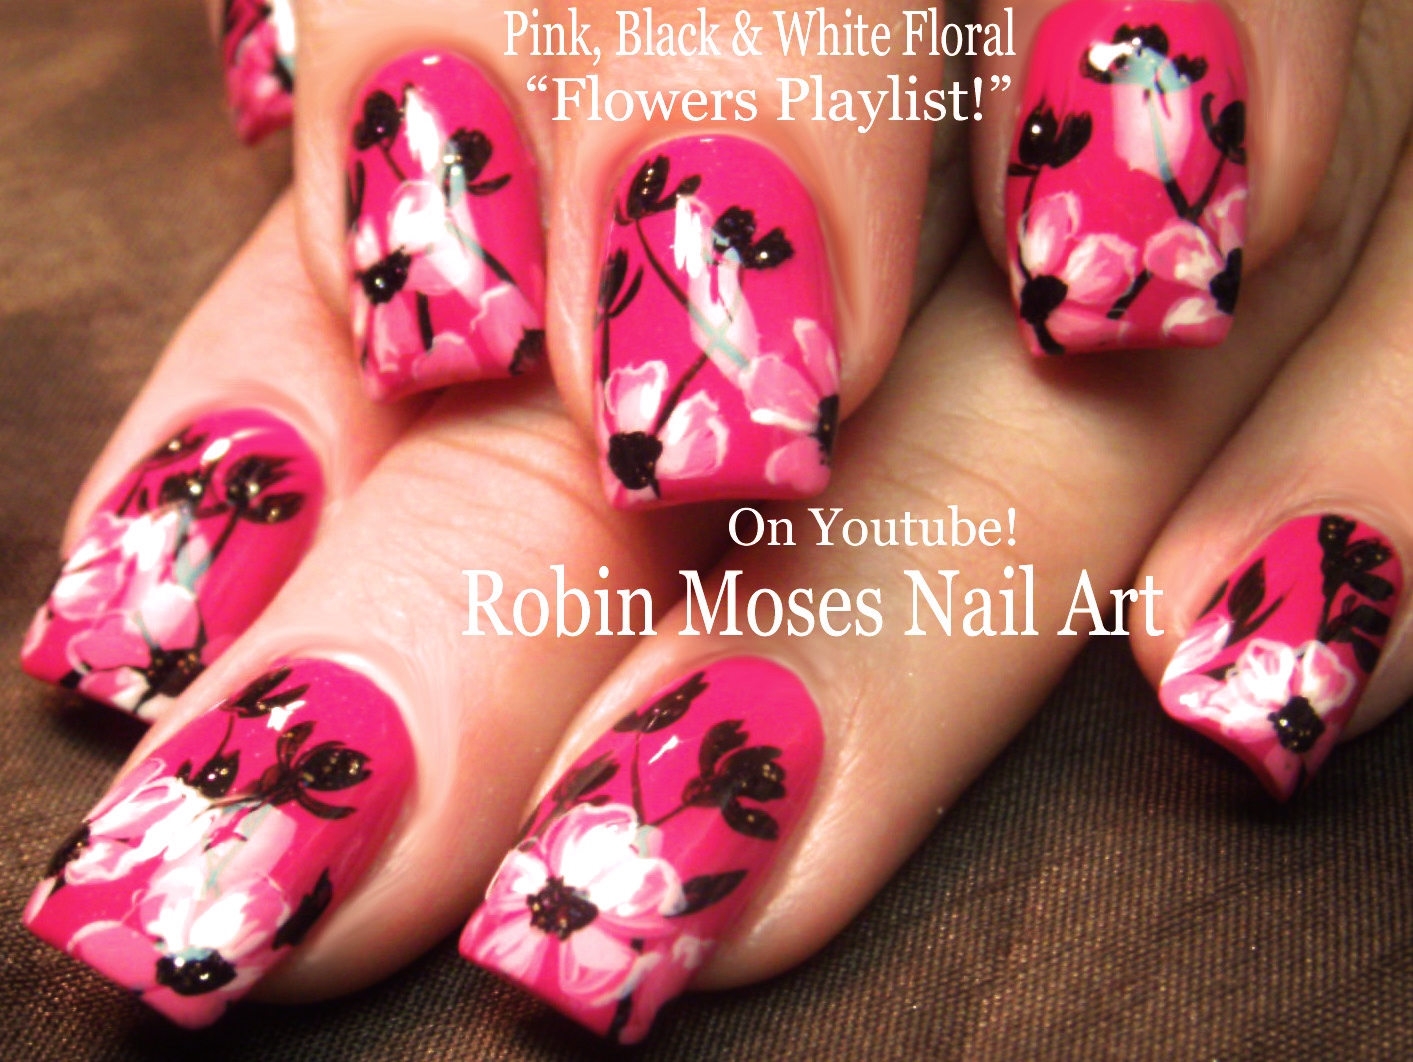 Nail Art By Robin Moses Rainbow Curls On Lavender Tips Nail Art